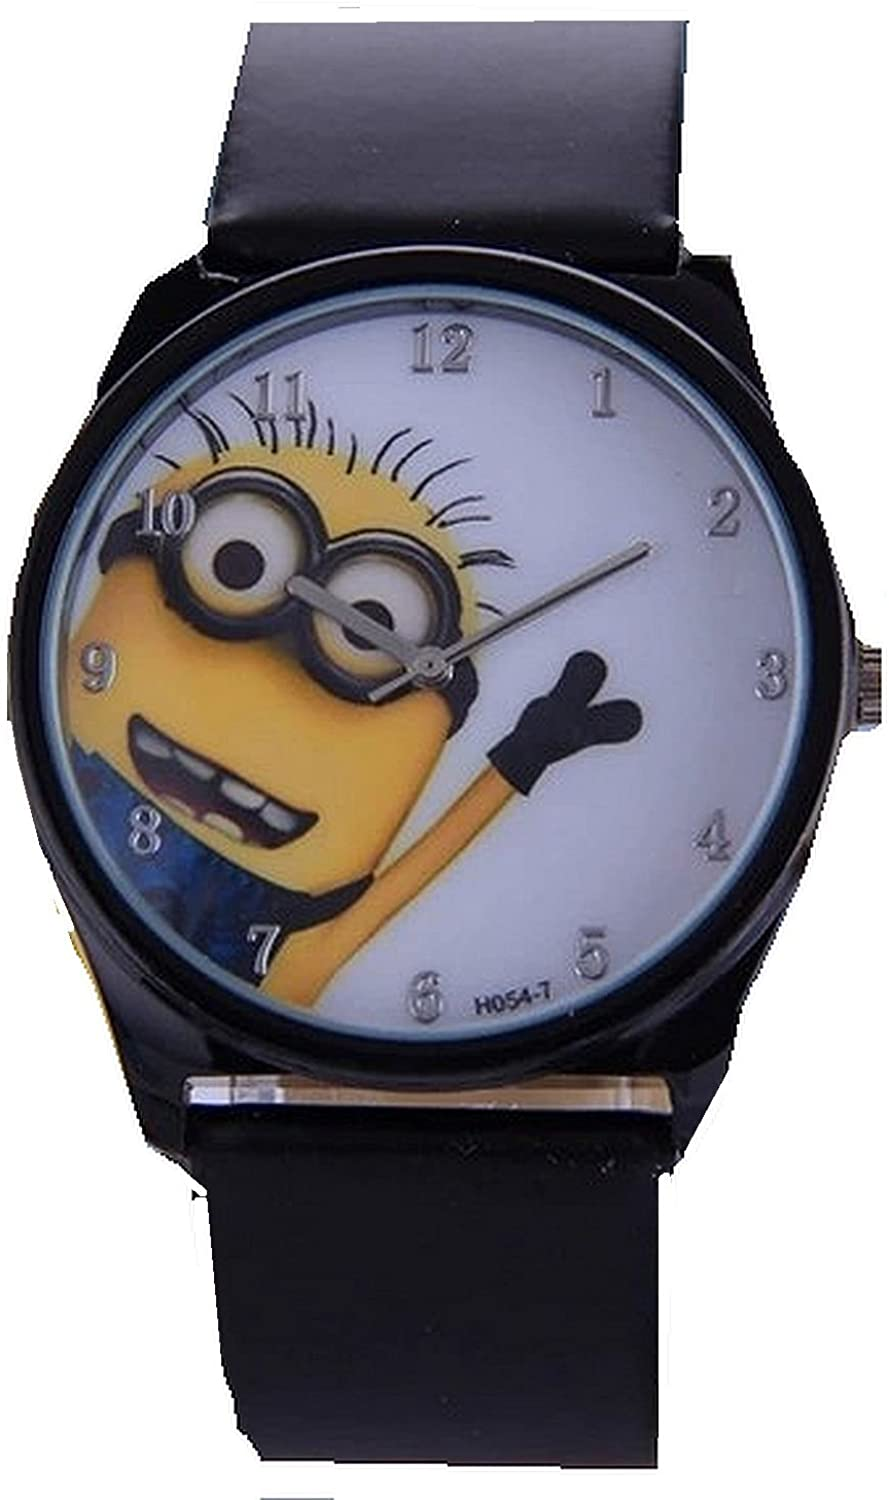 1 X DESPICABLE ME MINION WRISTBAND WRITING BRAND NEW GREAT GIFT FREE P/&P